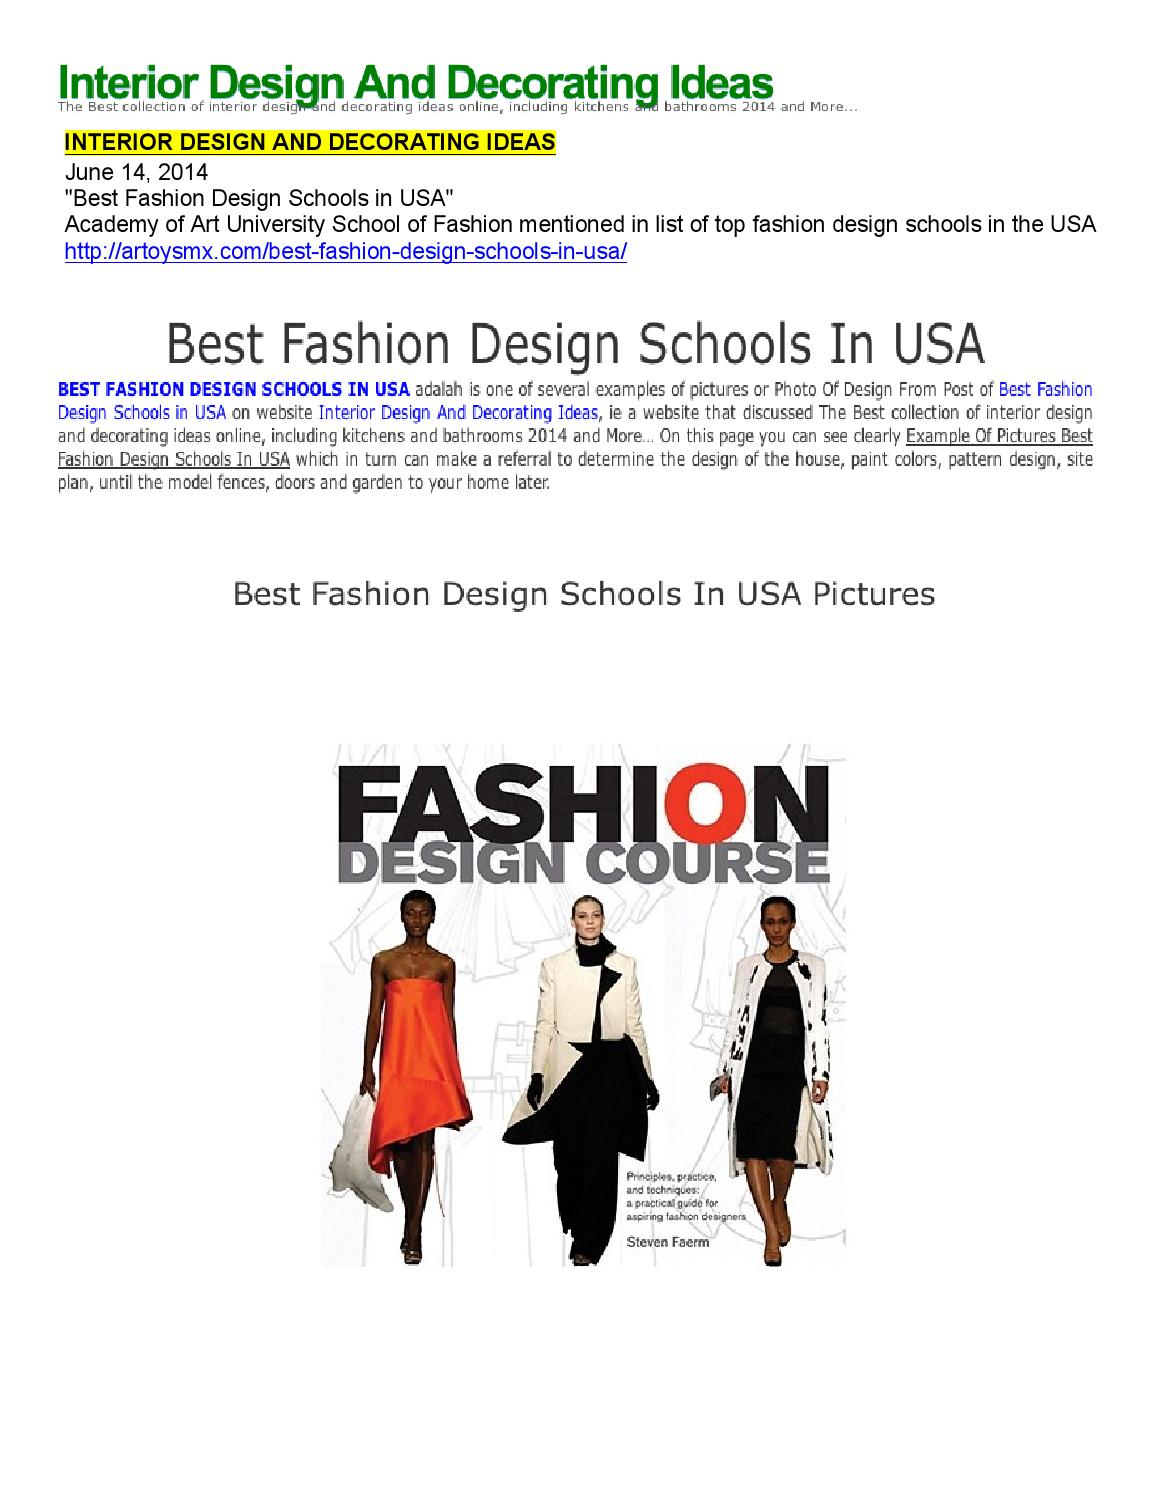 06 14 2014 Interior Design And Decorating Ideas By Academy Of Art University School Of Fashion Issuu